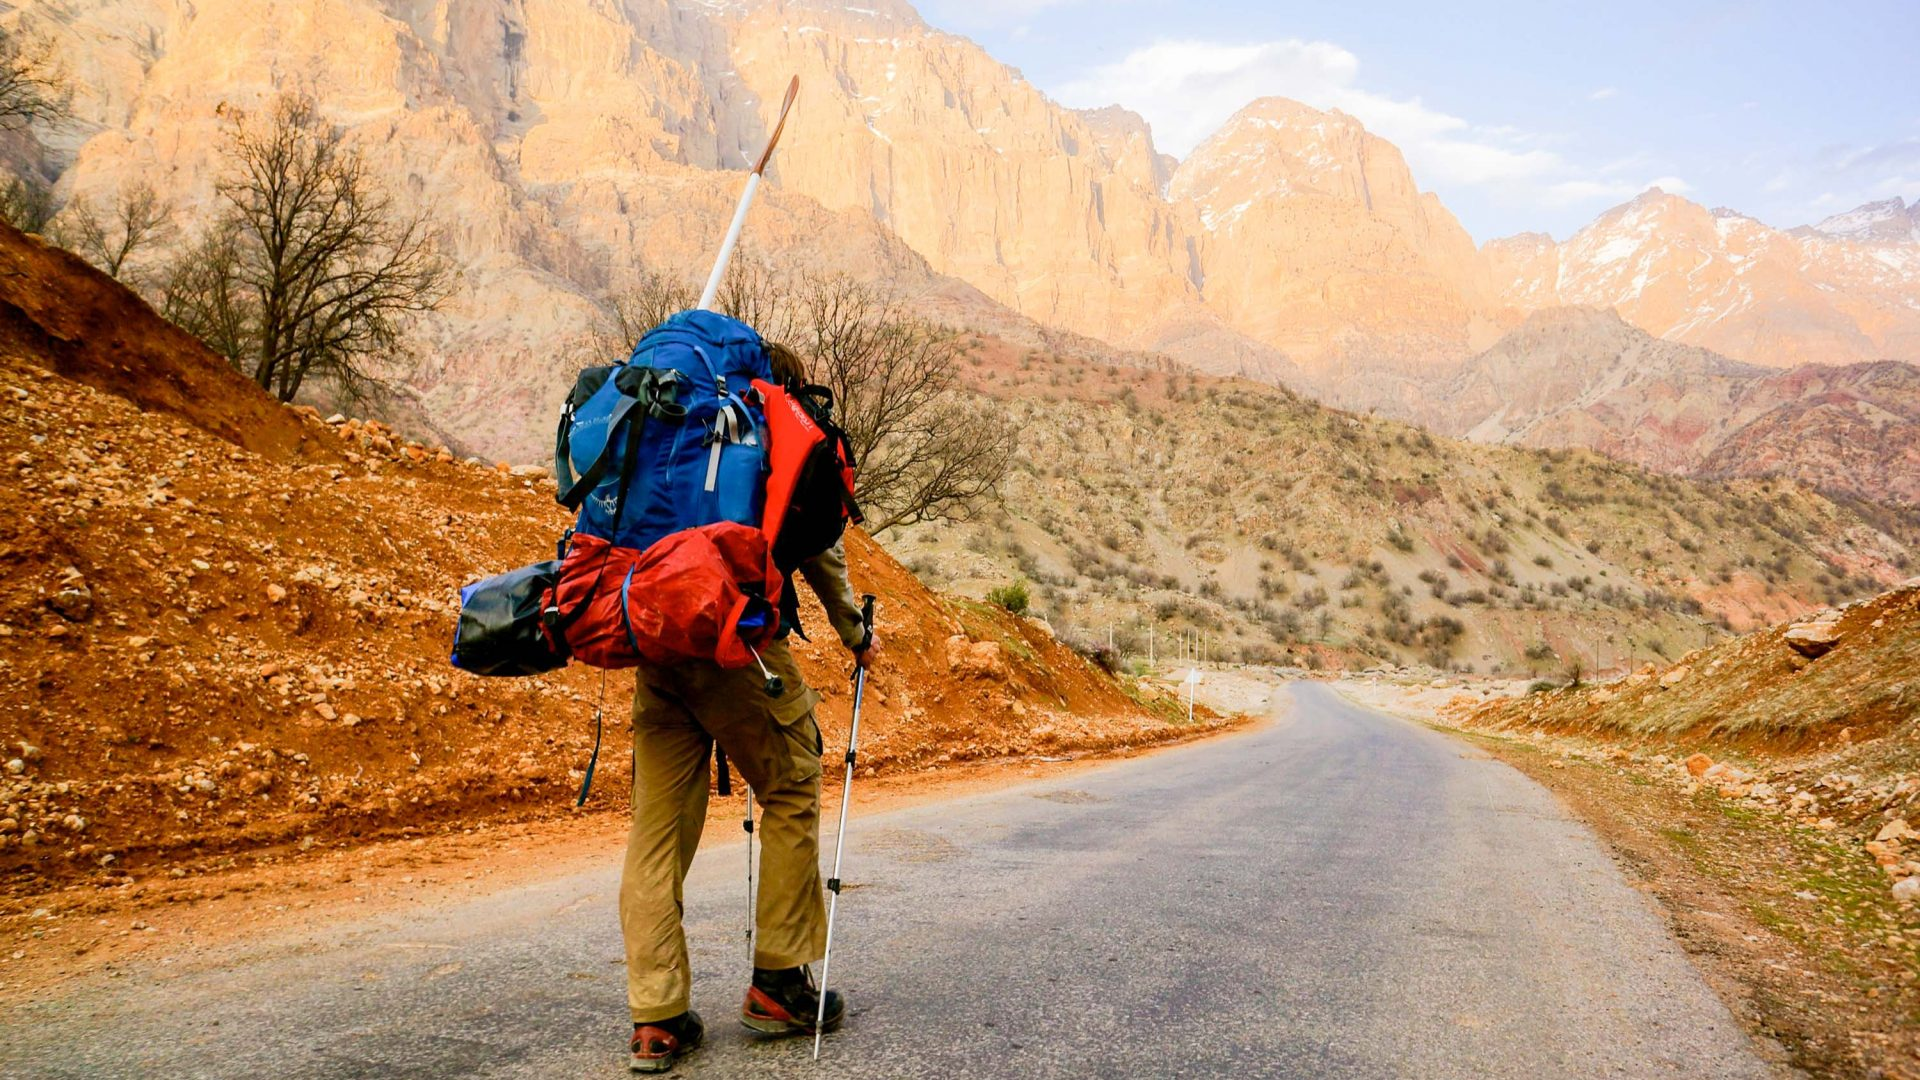 Leon McCarron hikes into the mountains of Iran in early spring.